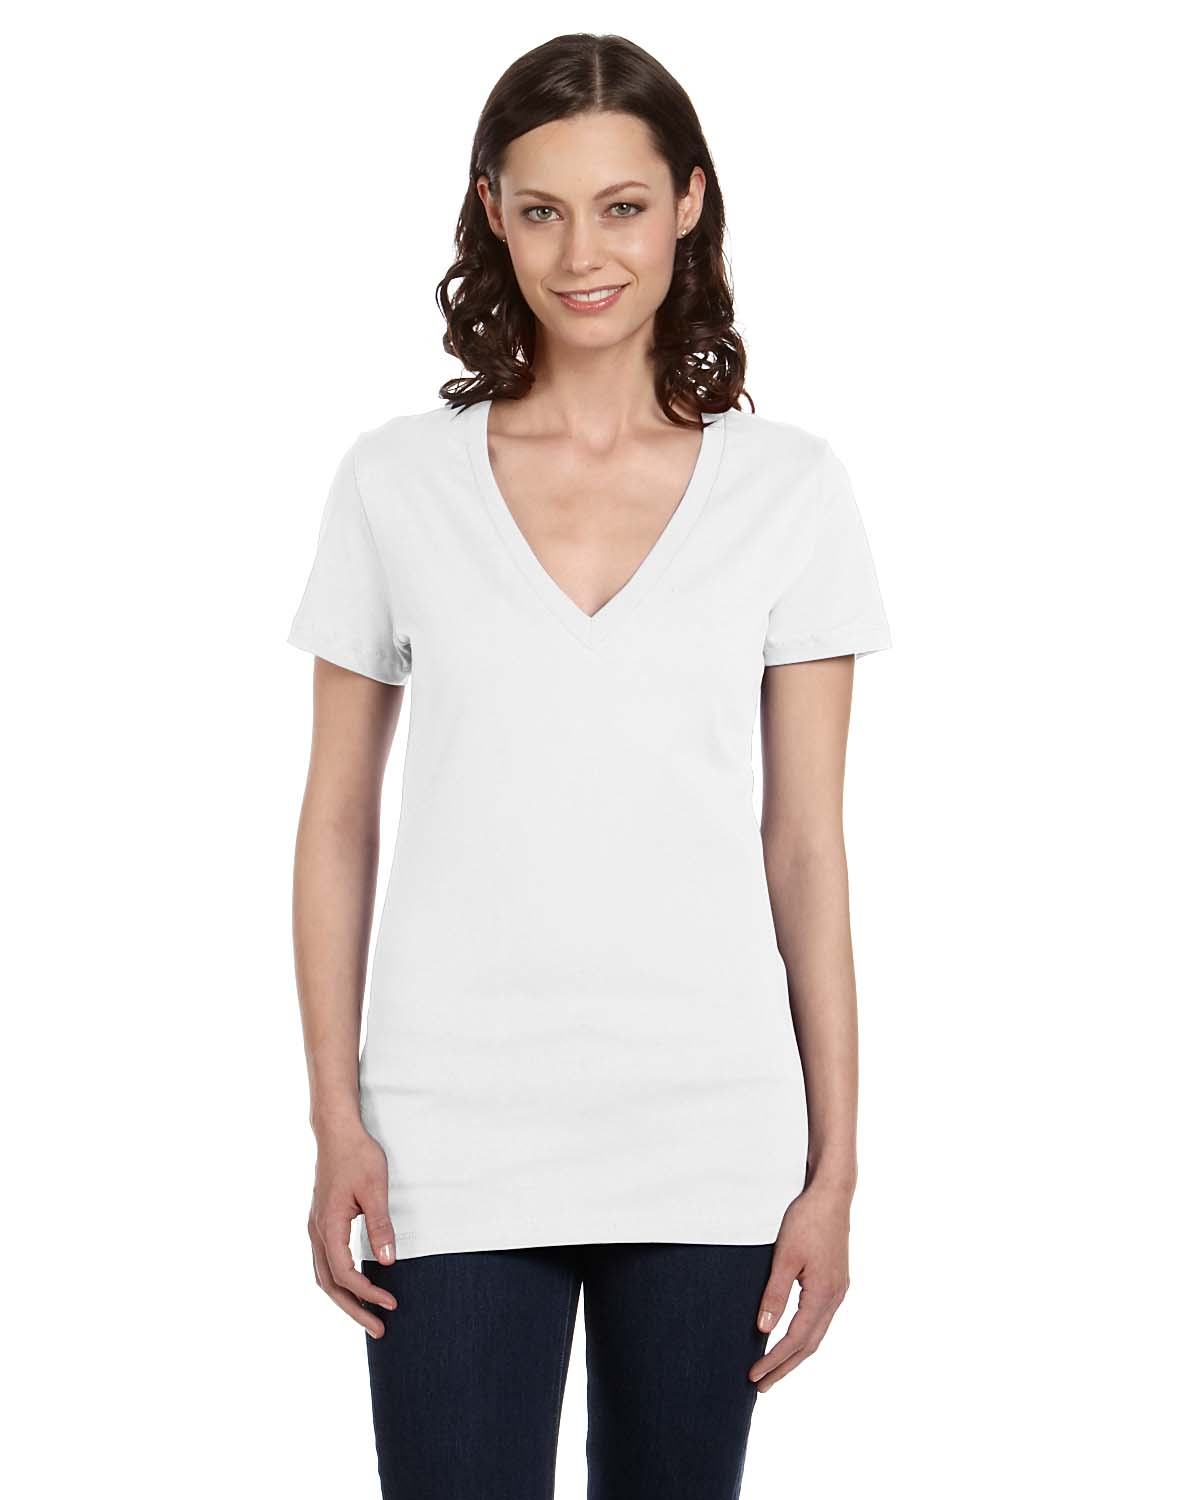 Find great deals on eBay for womens deep v neck t shirts. Shop with confidence. Skip to main content. eBay: Shop by category. Shop by category. Enter your search keyword Womens Deep V Neck Floral Short Sleeve Tops T Shirt Summer Casual Tunic Tops USA. Brand New · Unbranded. $ Buy It Now.